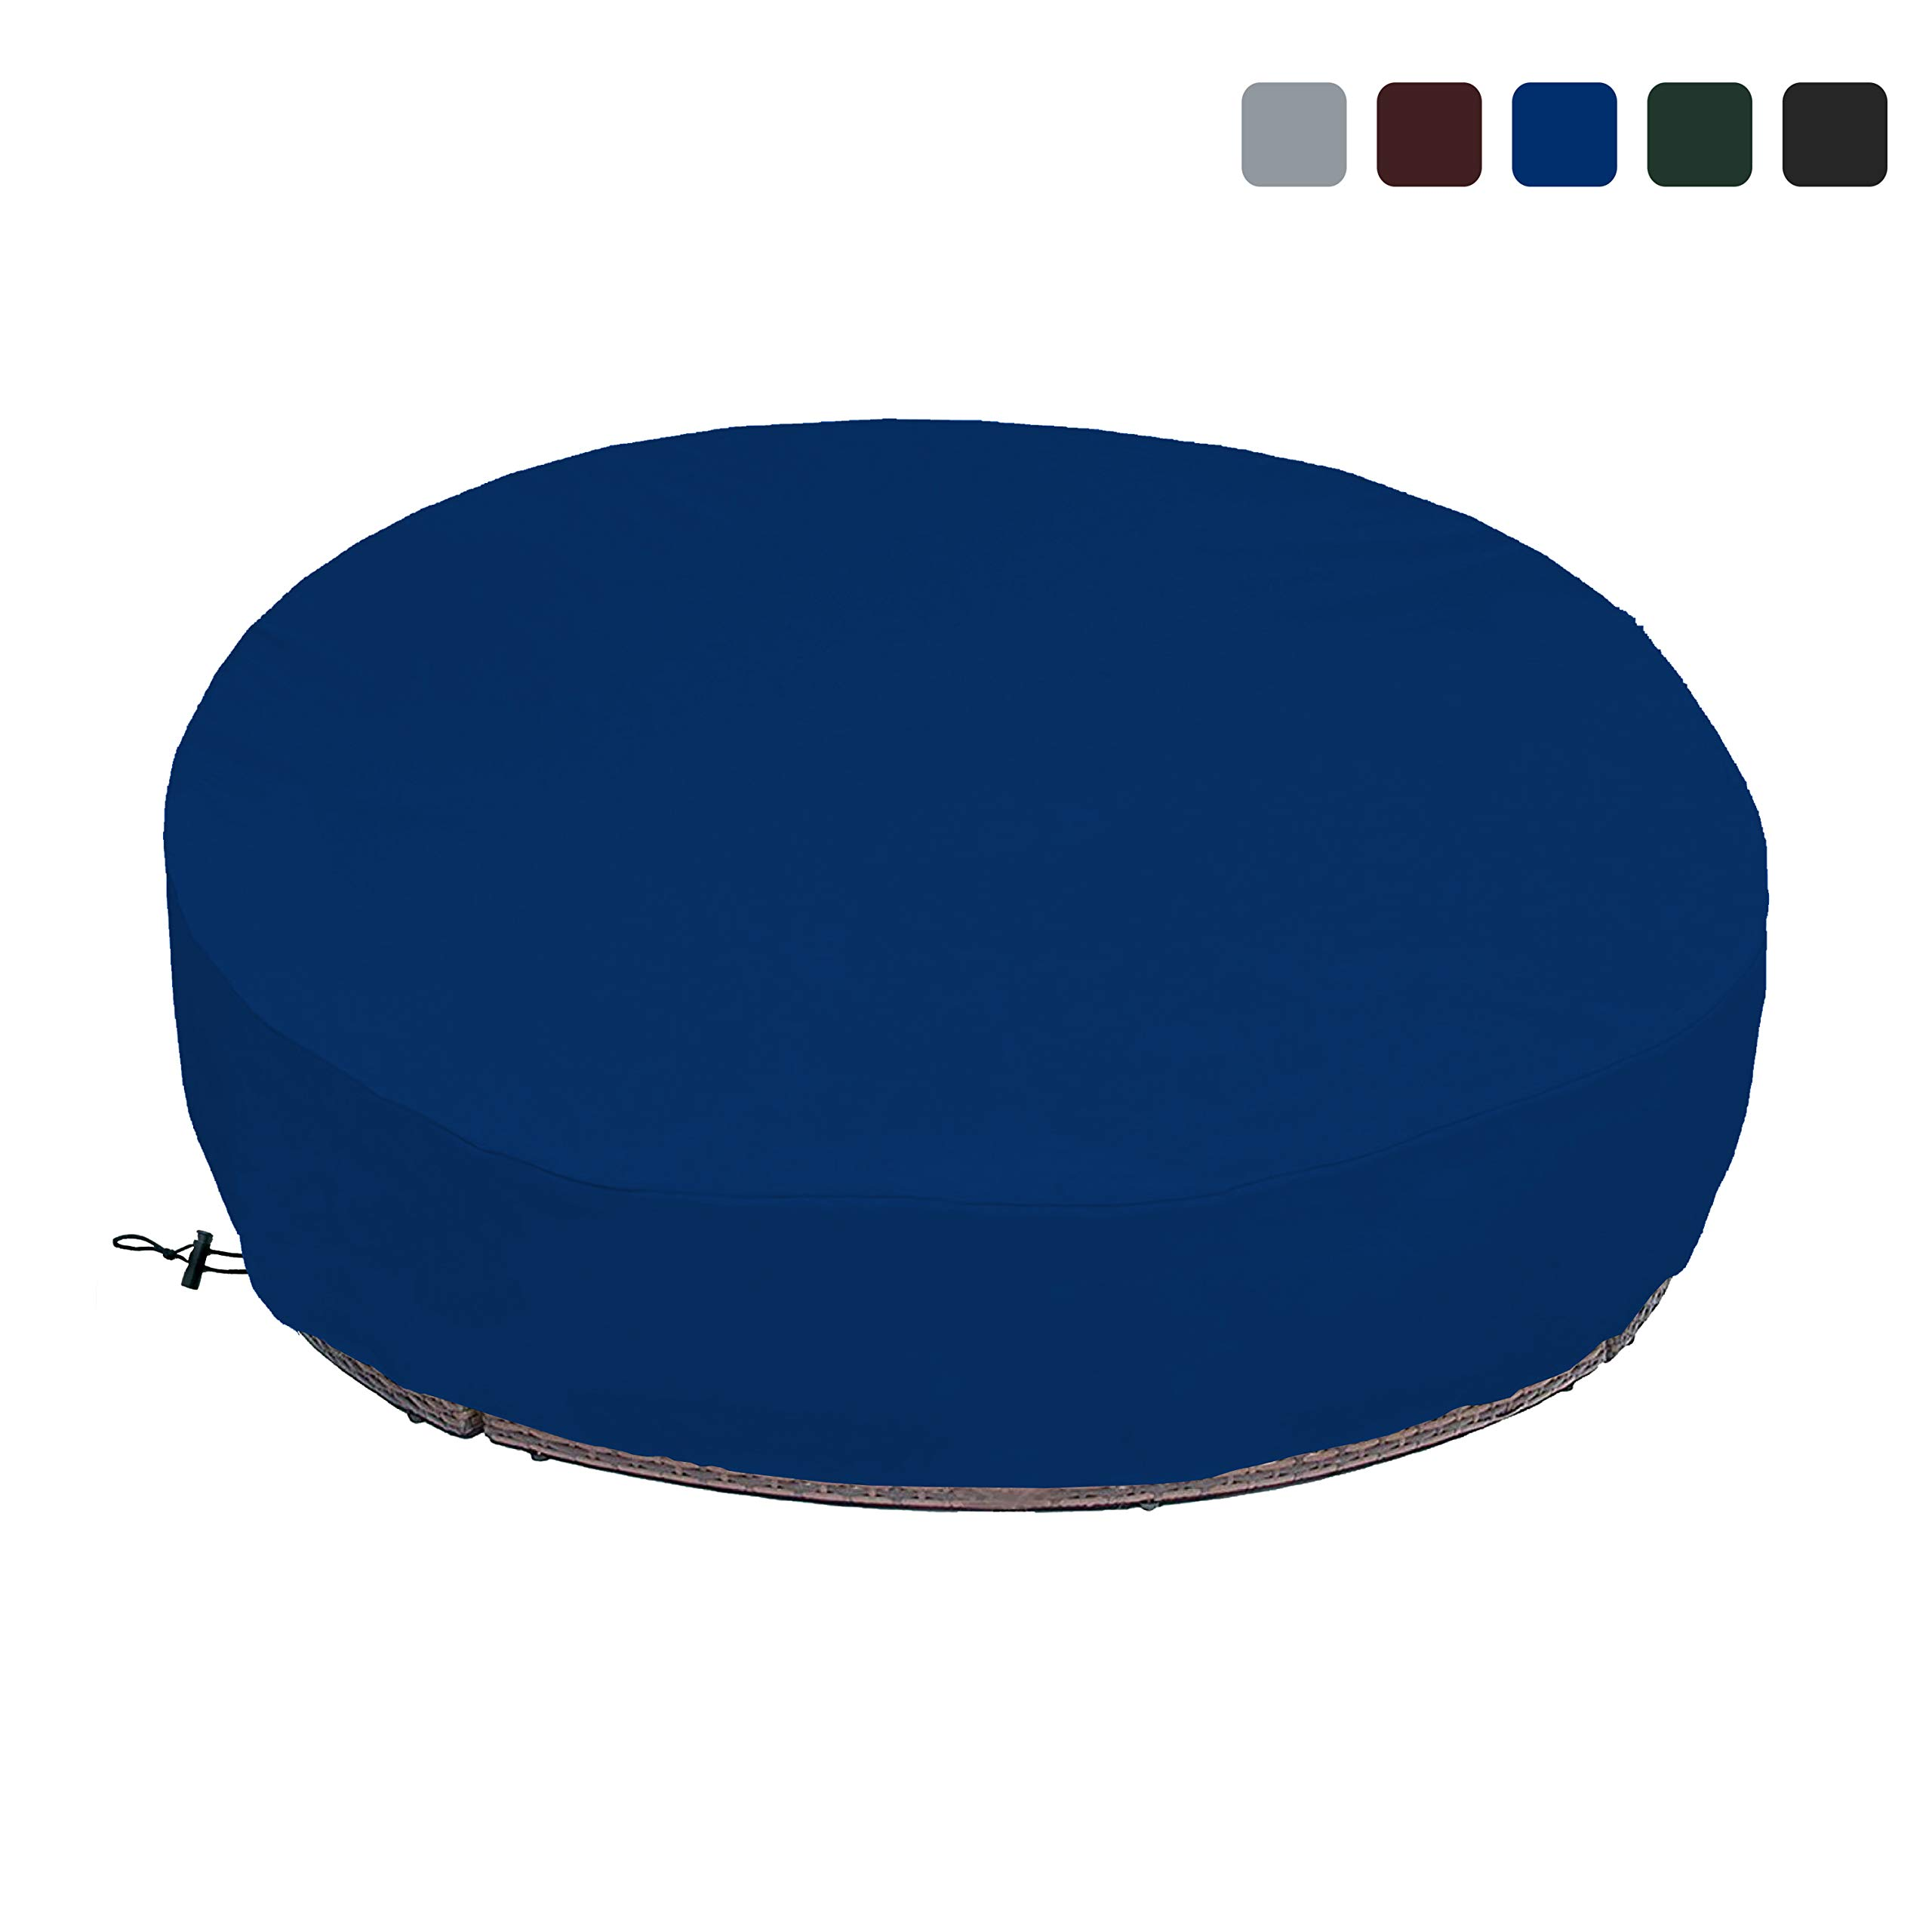 COVERS & ALL Outdoor Daybed Cover 18 Oz Waterproof - 100% UV & Weather Resistant Patio Furniture Cover with Air Pockets and Drawstring for Snug fit (Blue) by COVERS & ALL (Image #1)